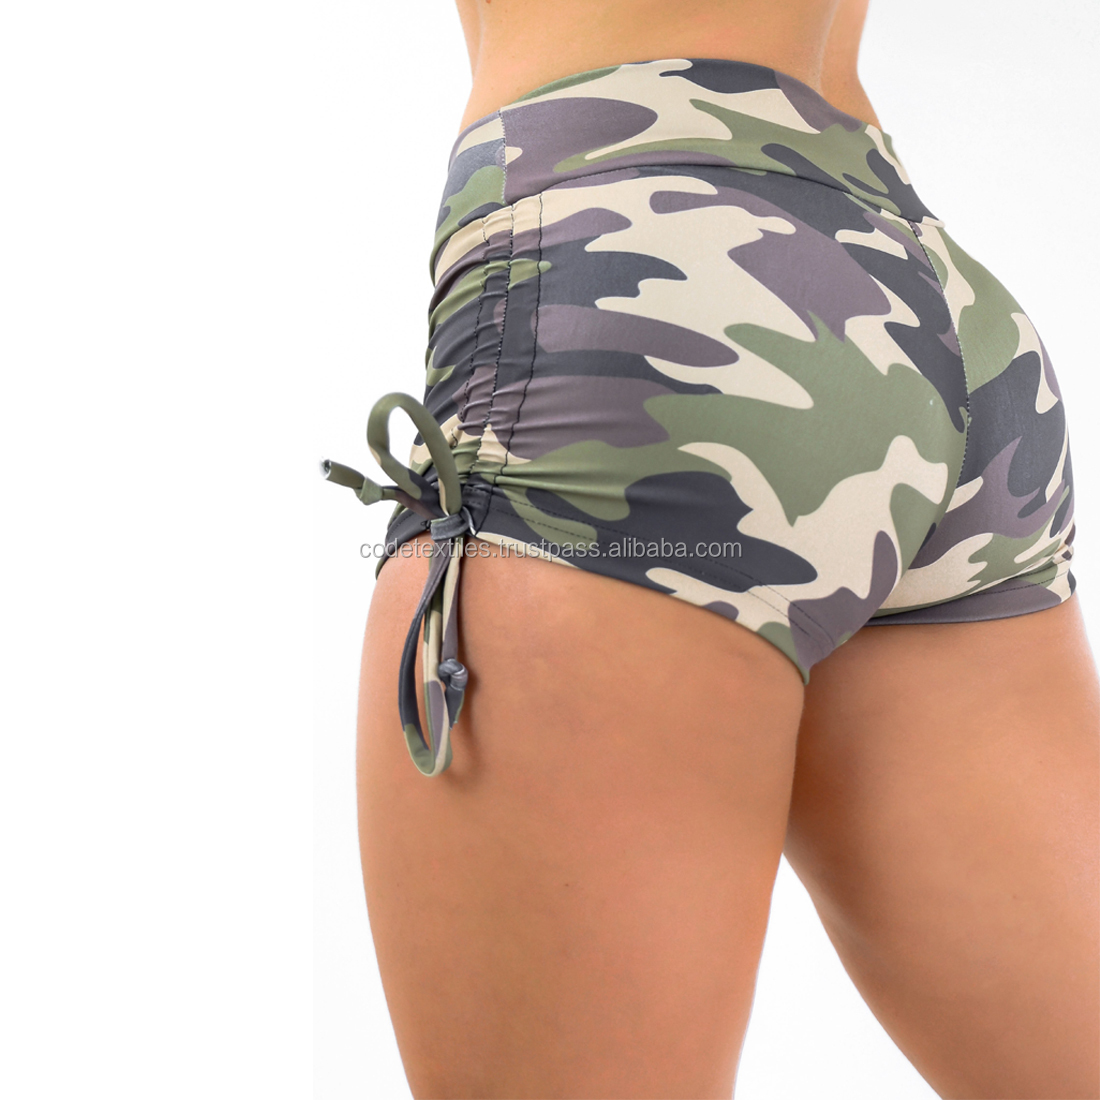 7134a4bcbb703 Booty Short Green Camo above the knee hot girls athletic shorts women sexy  transparent women shorts